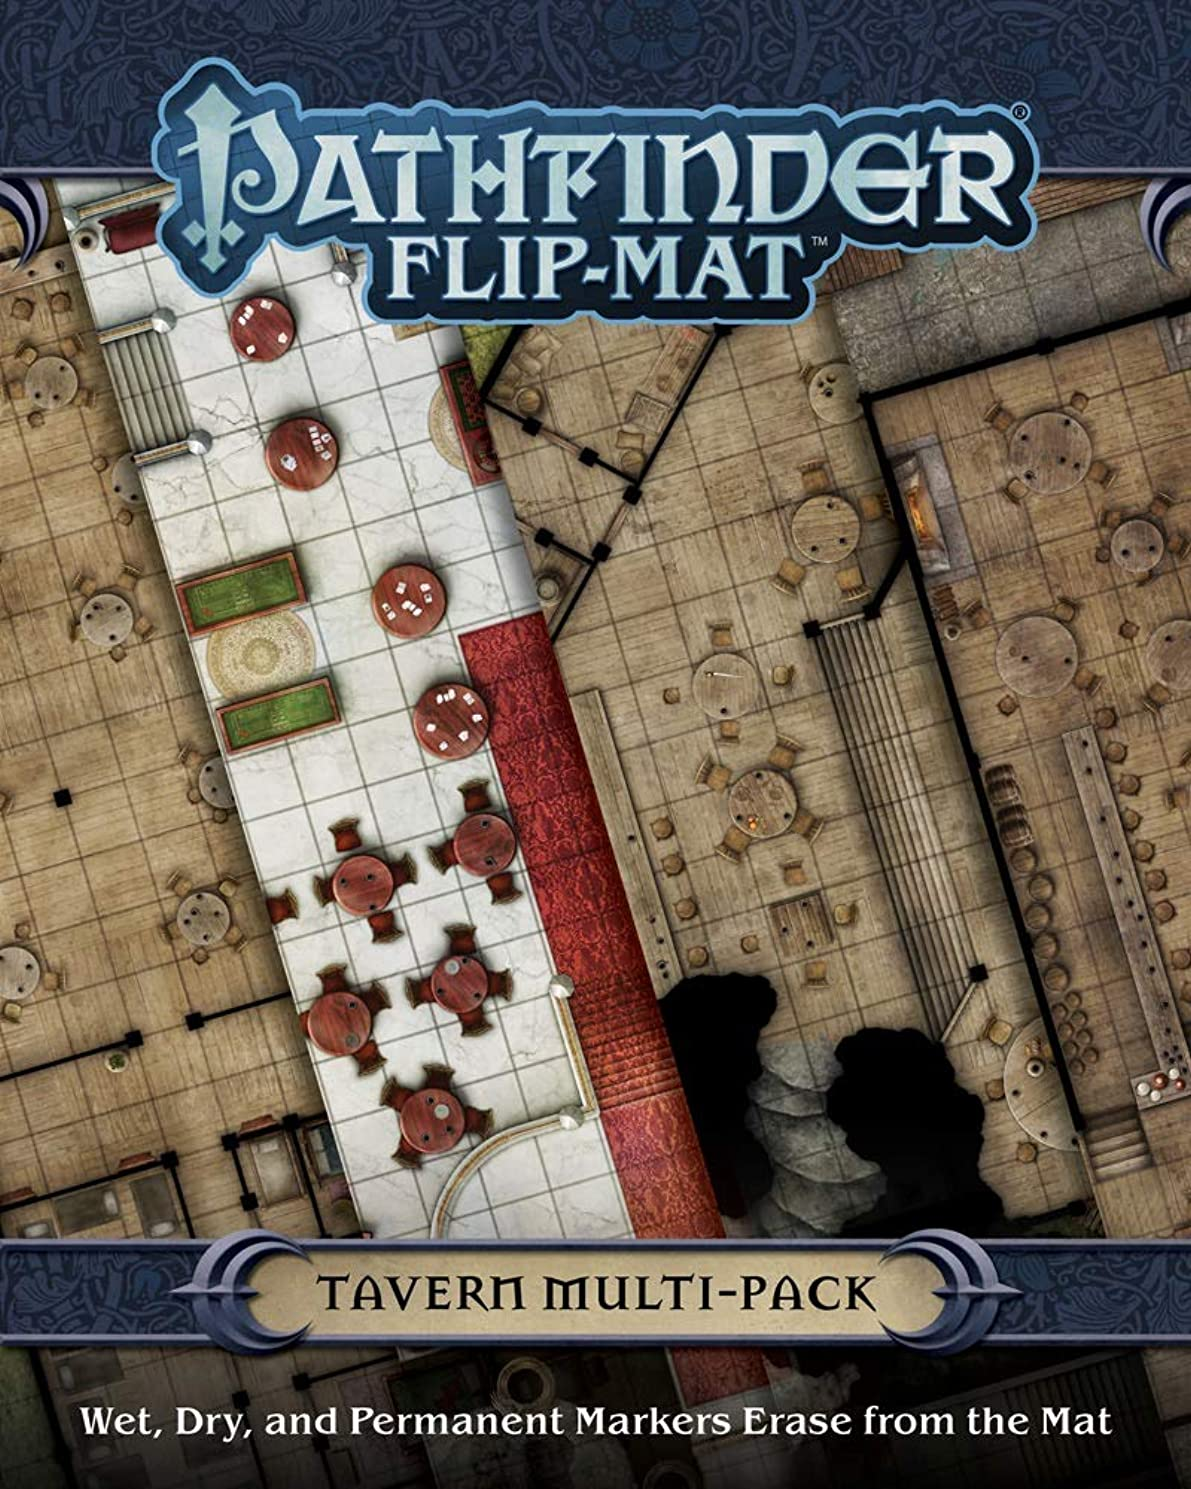 信号家畜レーニン主義Pathfinder Flip-mat - Tavern Multi-pack